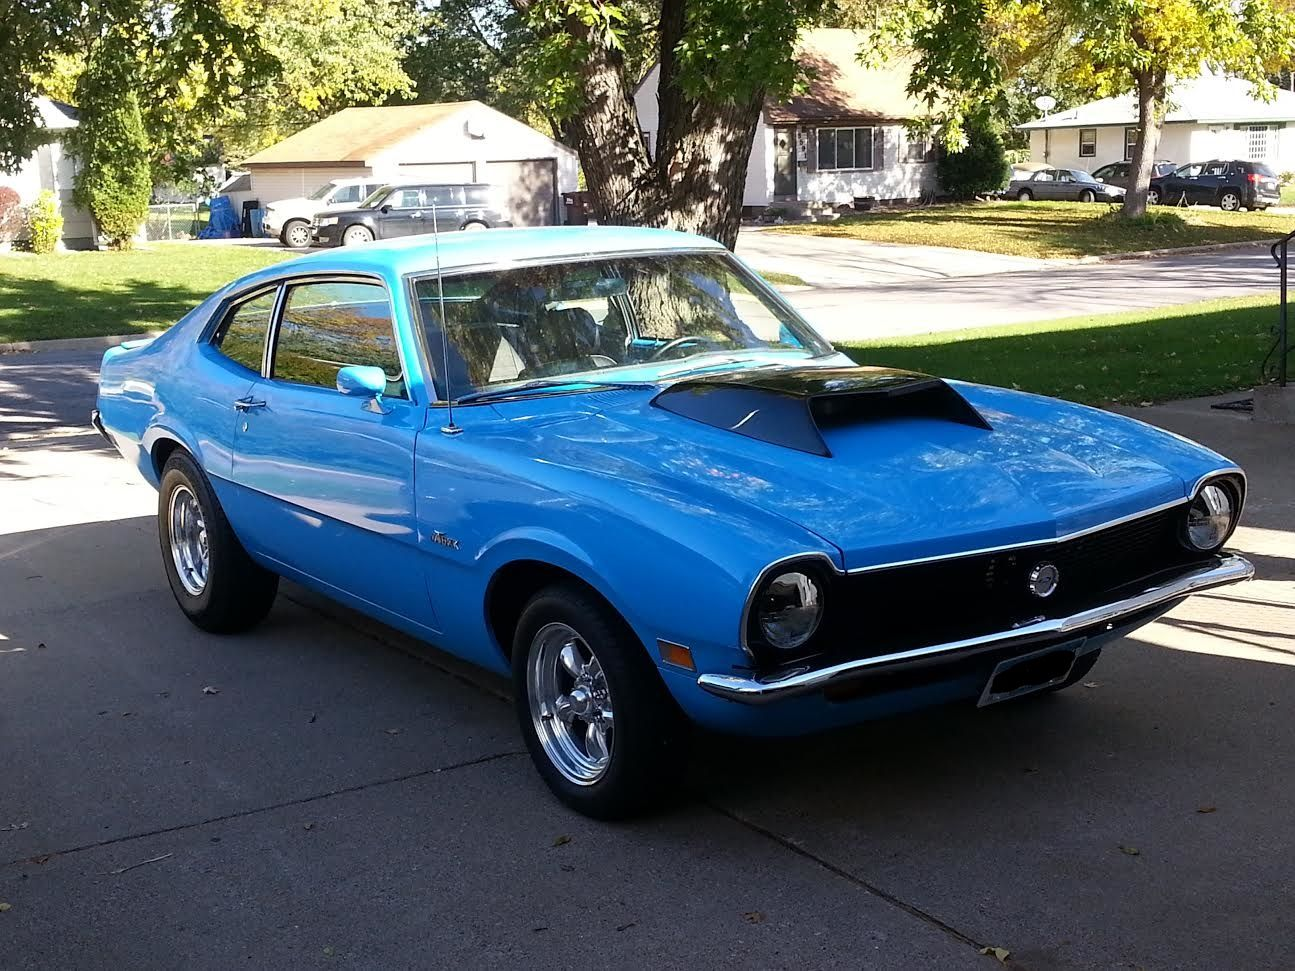 71 Maverick Built 289 C4 With Shift Kit And The Hood Scoop Is